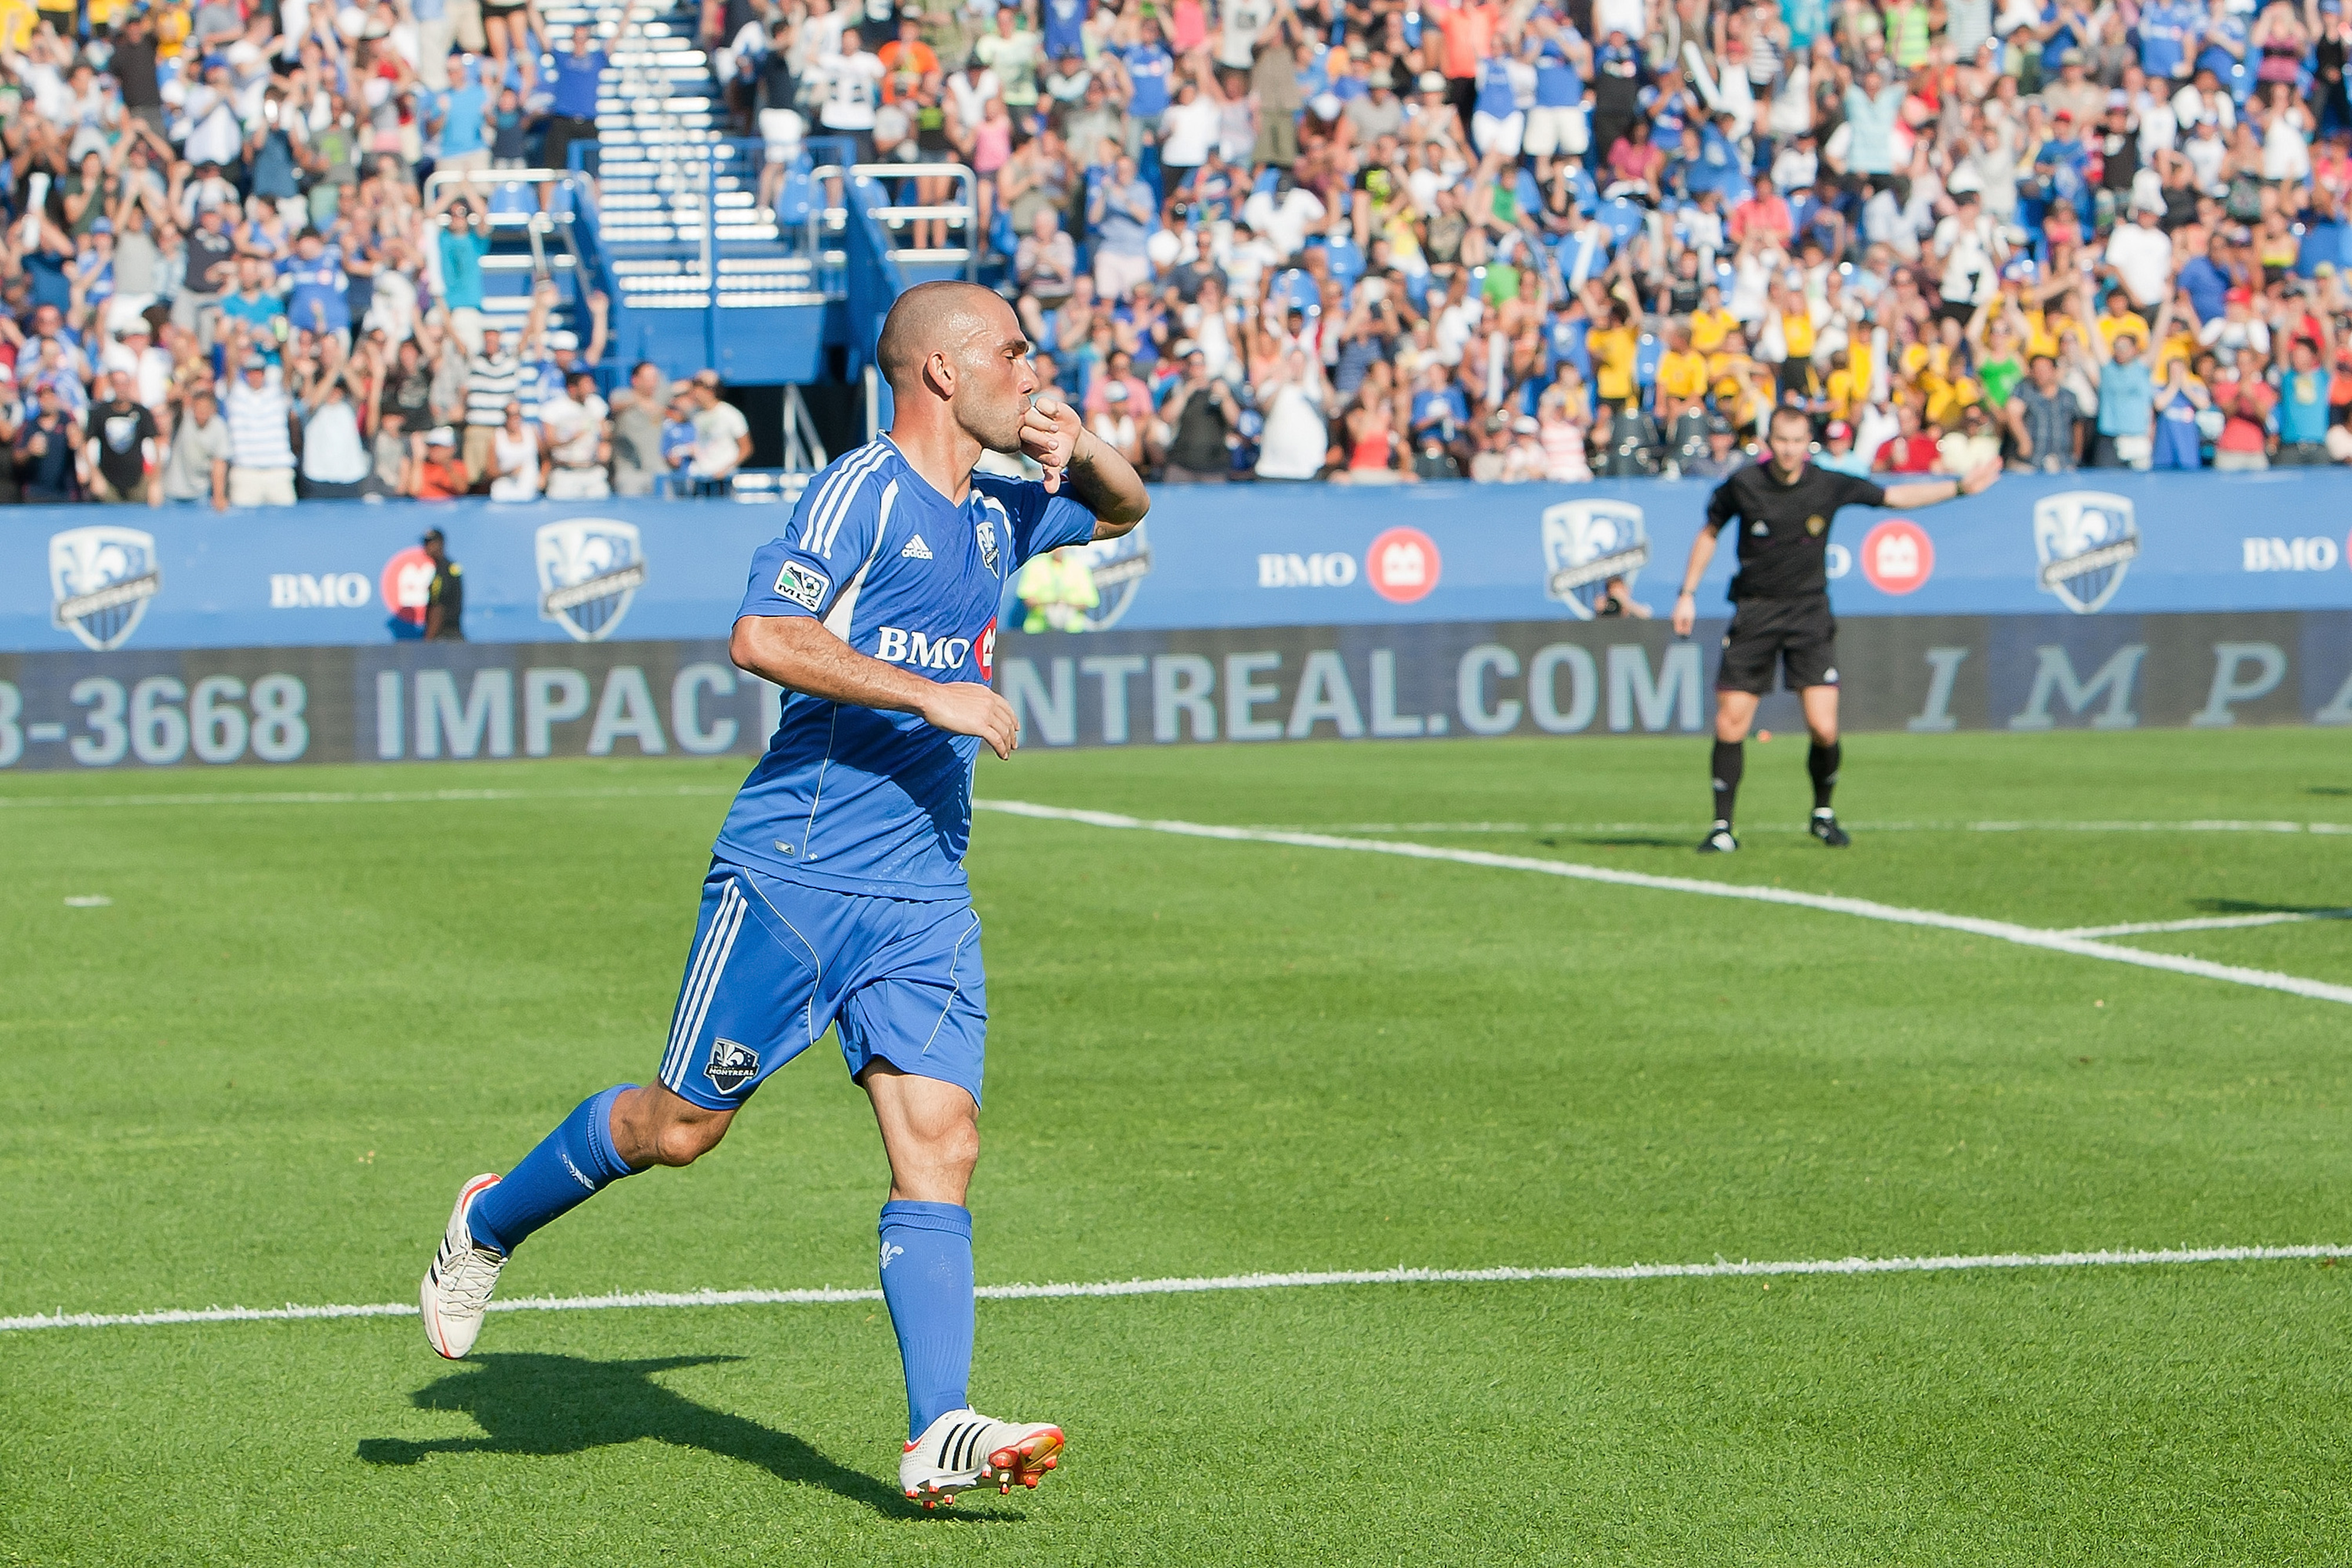 Marco Di Vaio's goal was simply a disaster in terms of team defending, and D.C. United has no one to blame but themselves in today's 3-0 loss at Stade Saputo.